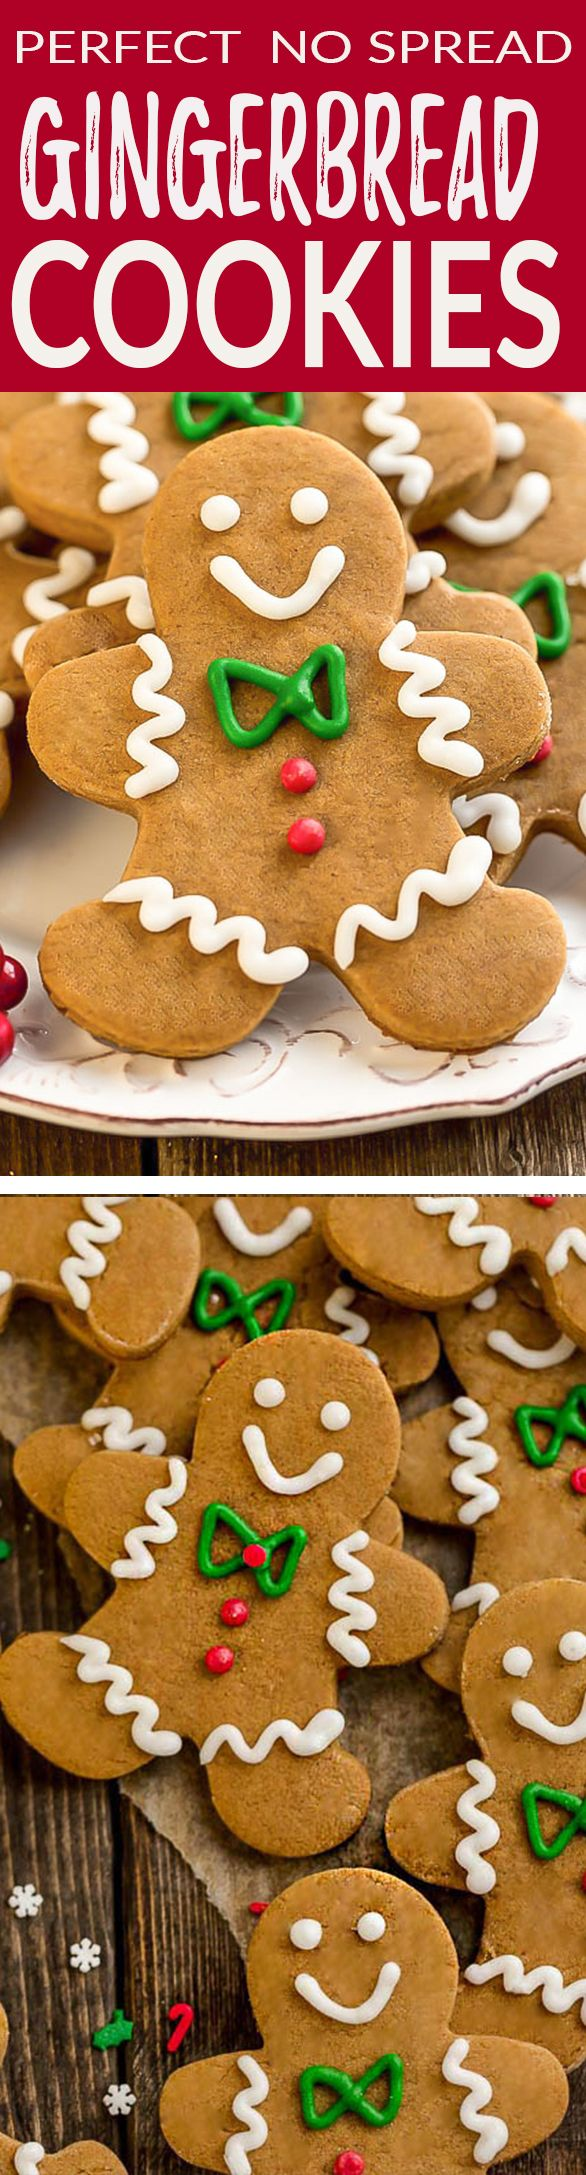 This recipe for these adorably cute homemade from scratch Gingerbread cookies are a classic holiday favorite. You can cut them into gingerbread men, stars, houses or any shape you have. They are perfectly spiced and flavored with with cinnamon, brown sugar, molasses, cloves and nutmeg. Best of all, easy to make with soft and chewy with slightly crisp edges.  Amazing for your cookie platter or package them up for friends, family or neighbor gifts. #christmas #holiday #gingerbread #cookies